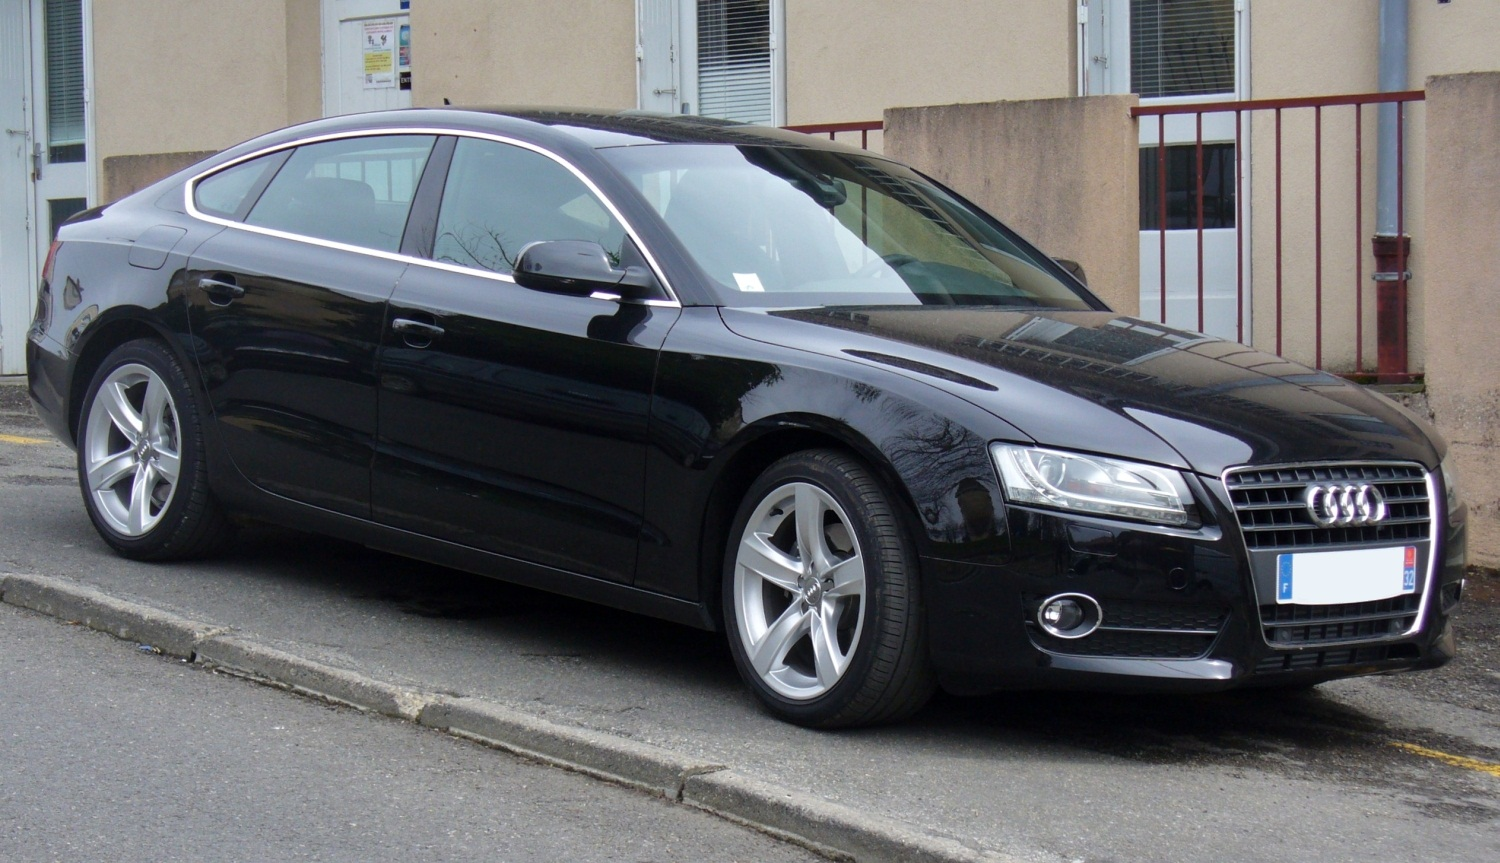 audi a5 sportback 2 0 tdi technical details history. Black Bedroom Furniture Sets. Home Design Ideas